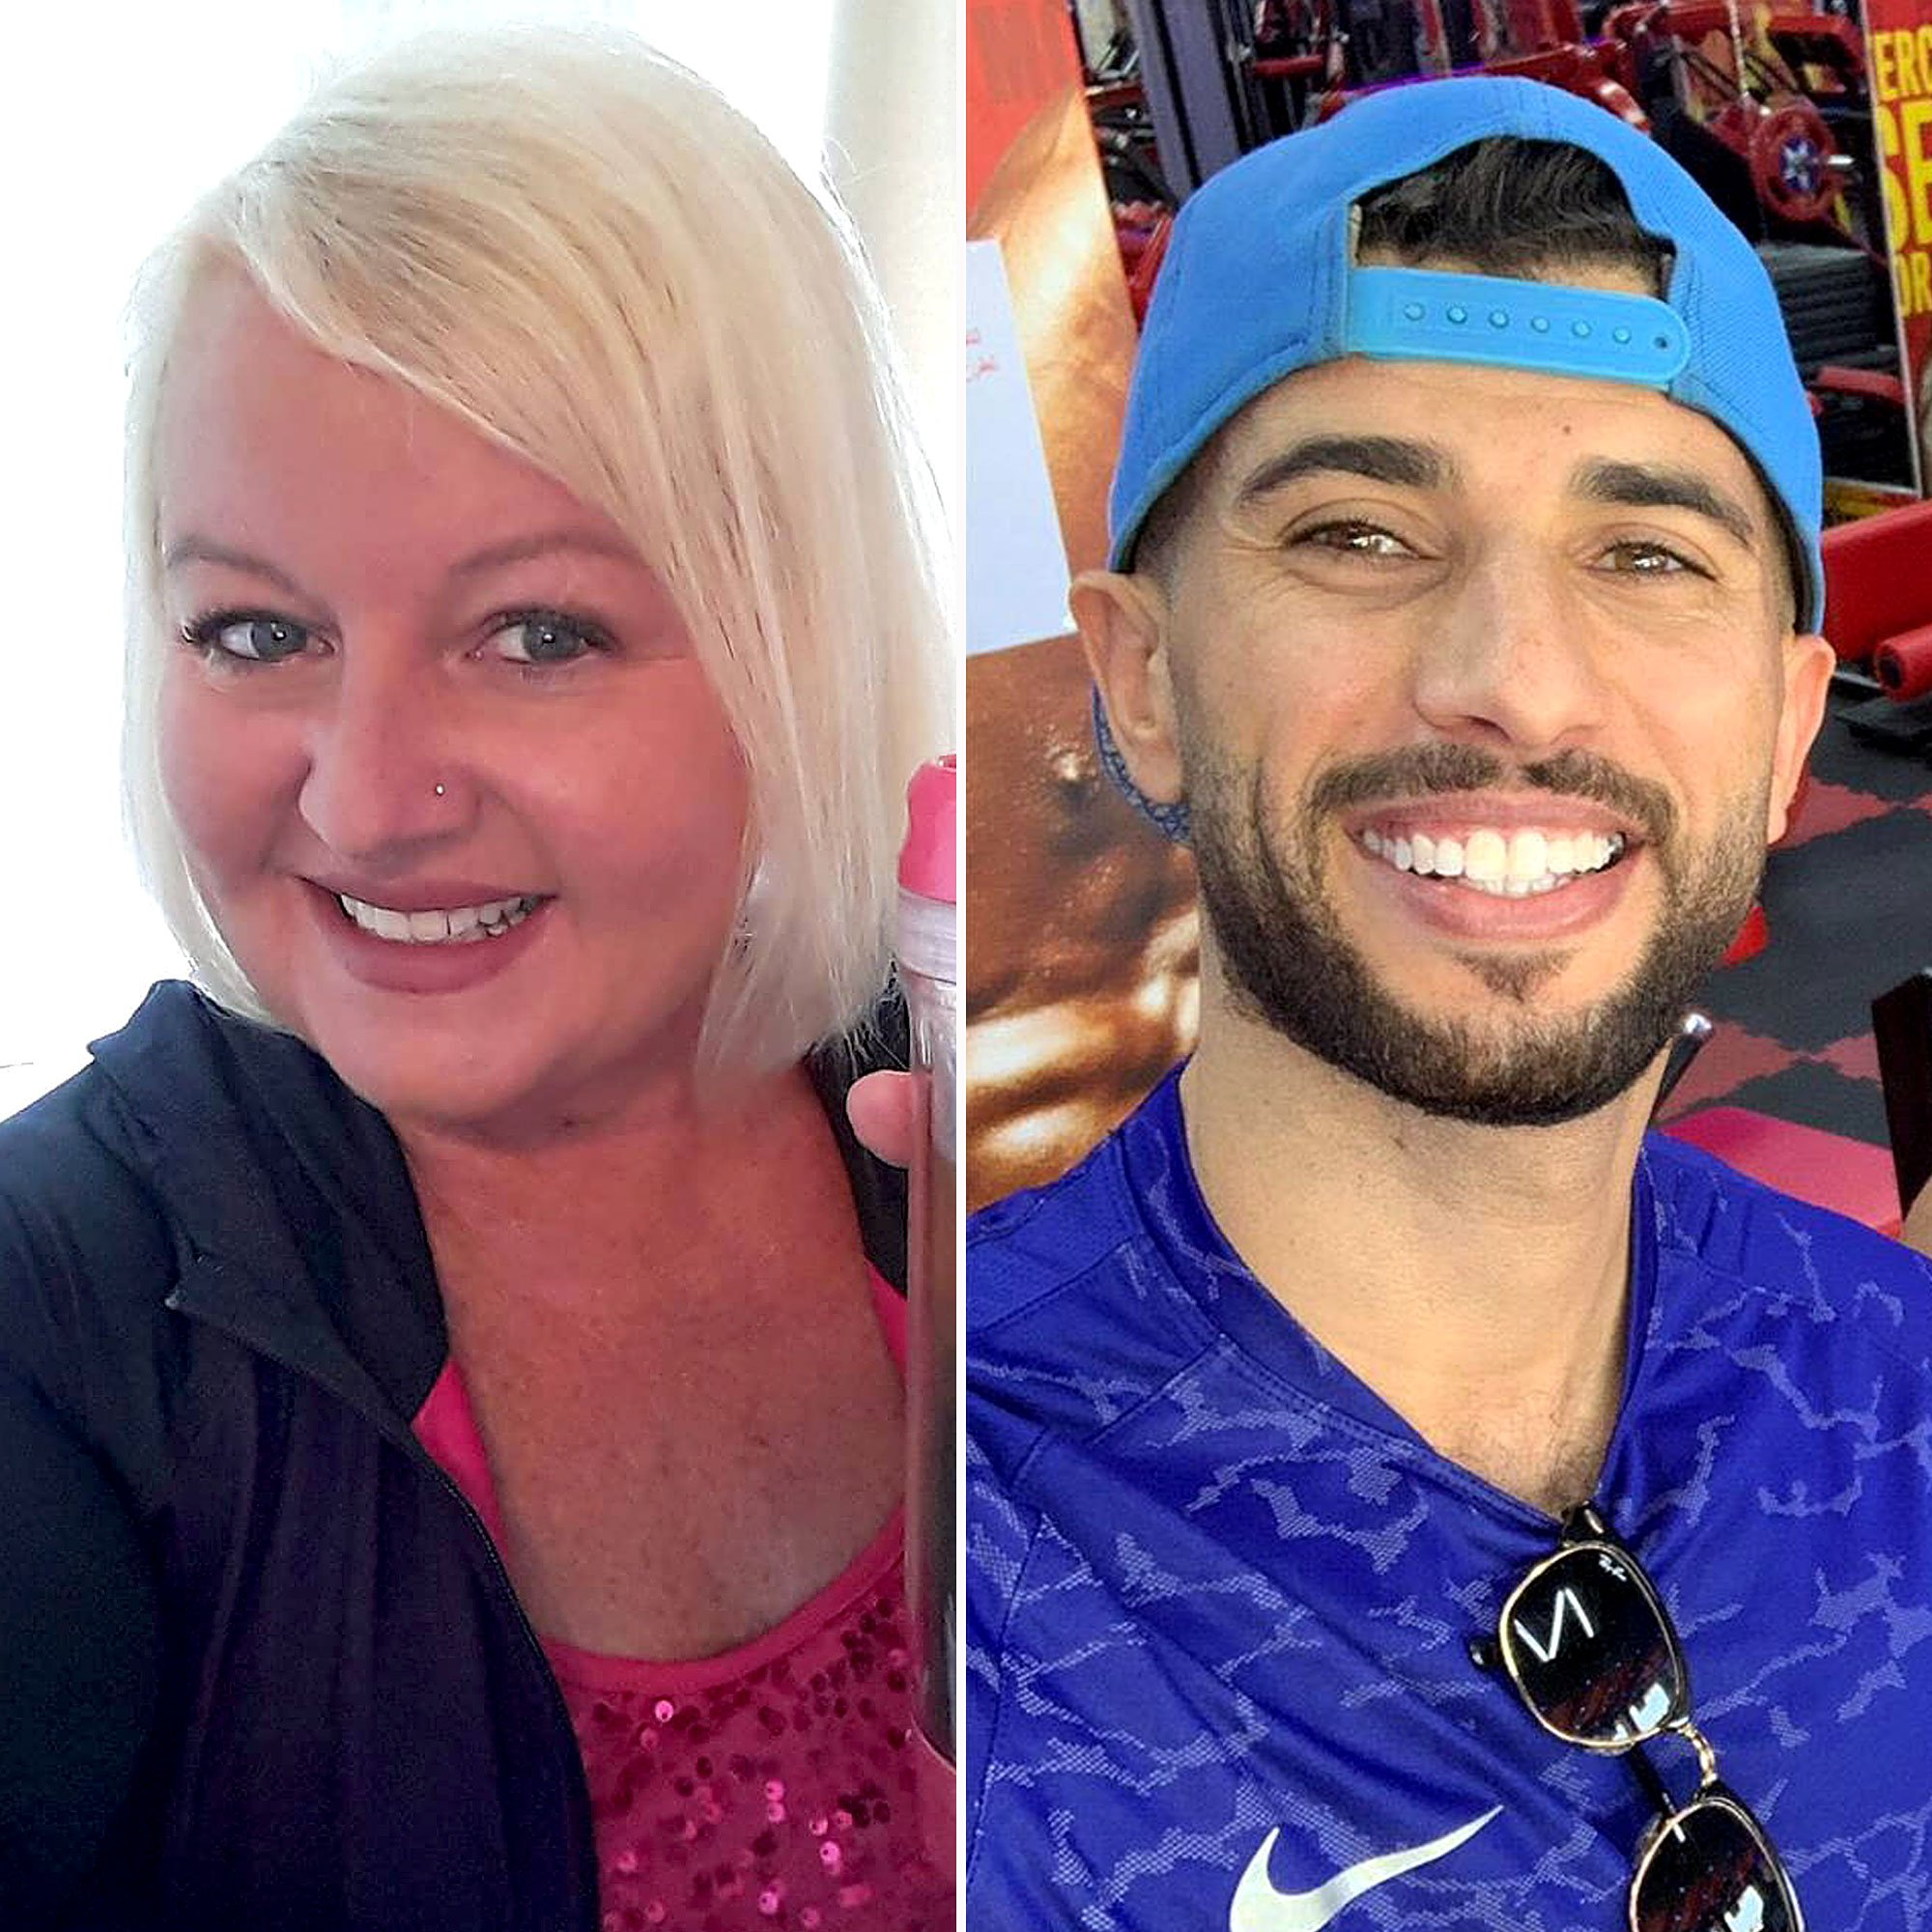 90 Day Fiance Laura Has New 25-Year-Old Boyfriend After Messy Divorce From Aladin